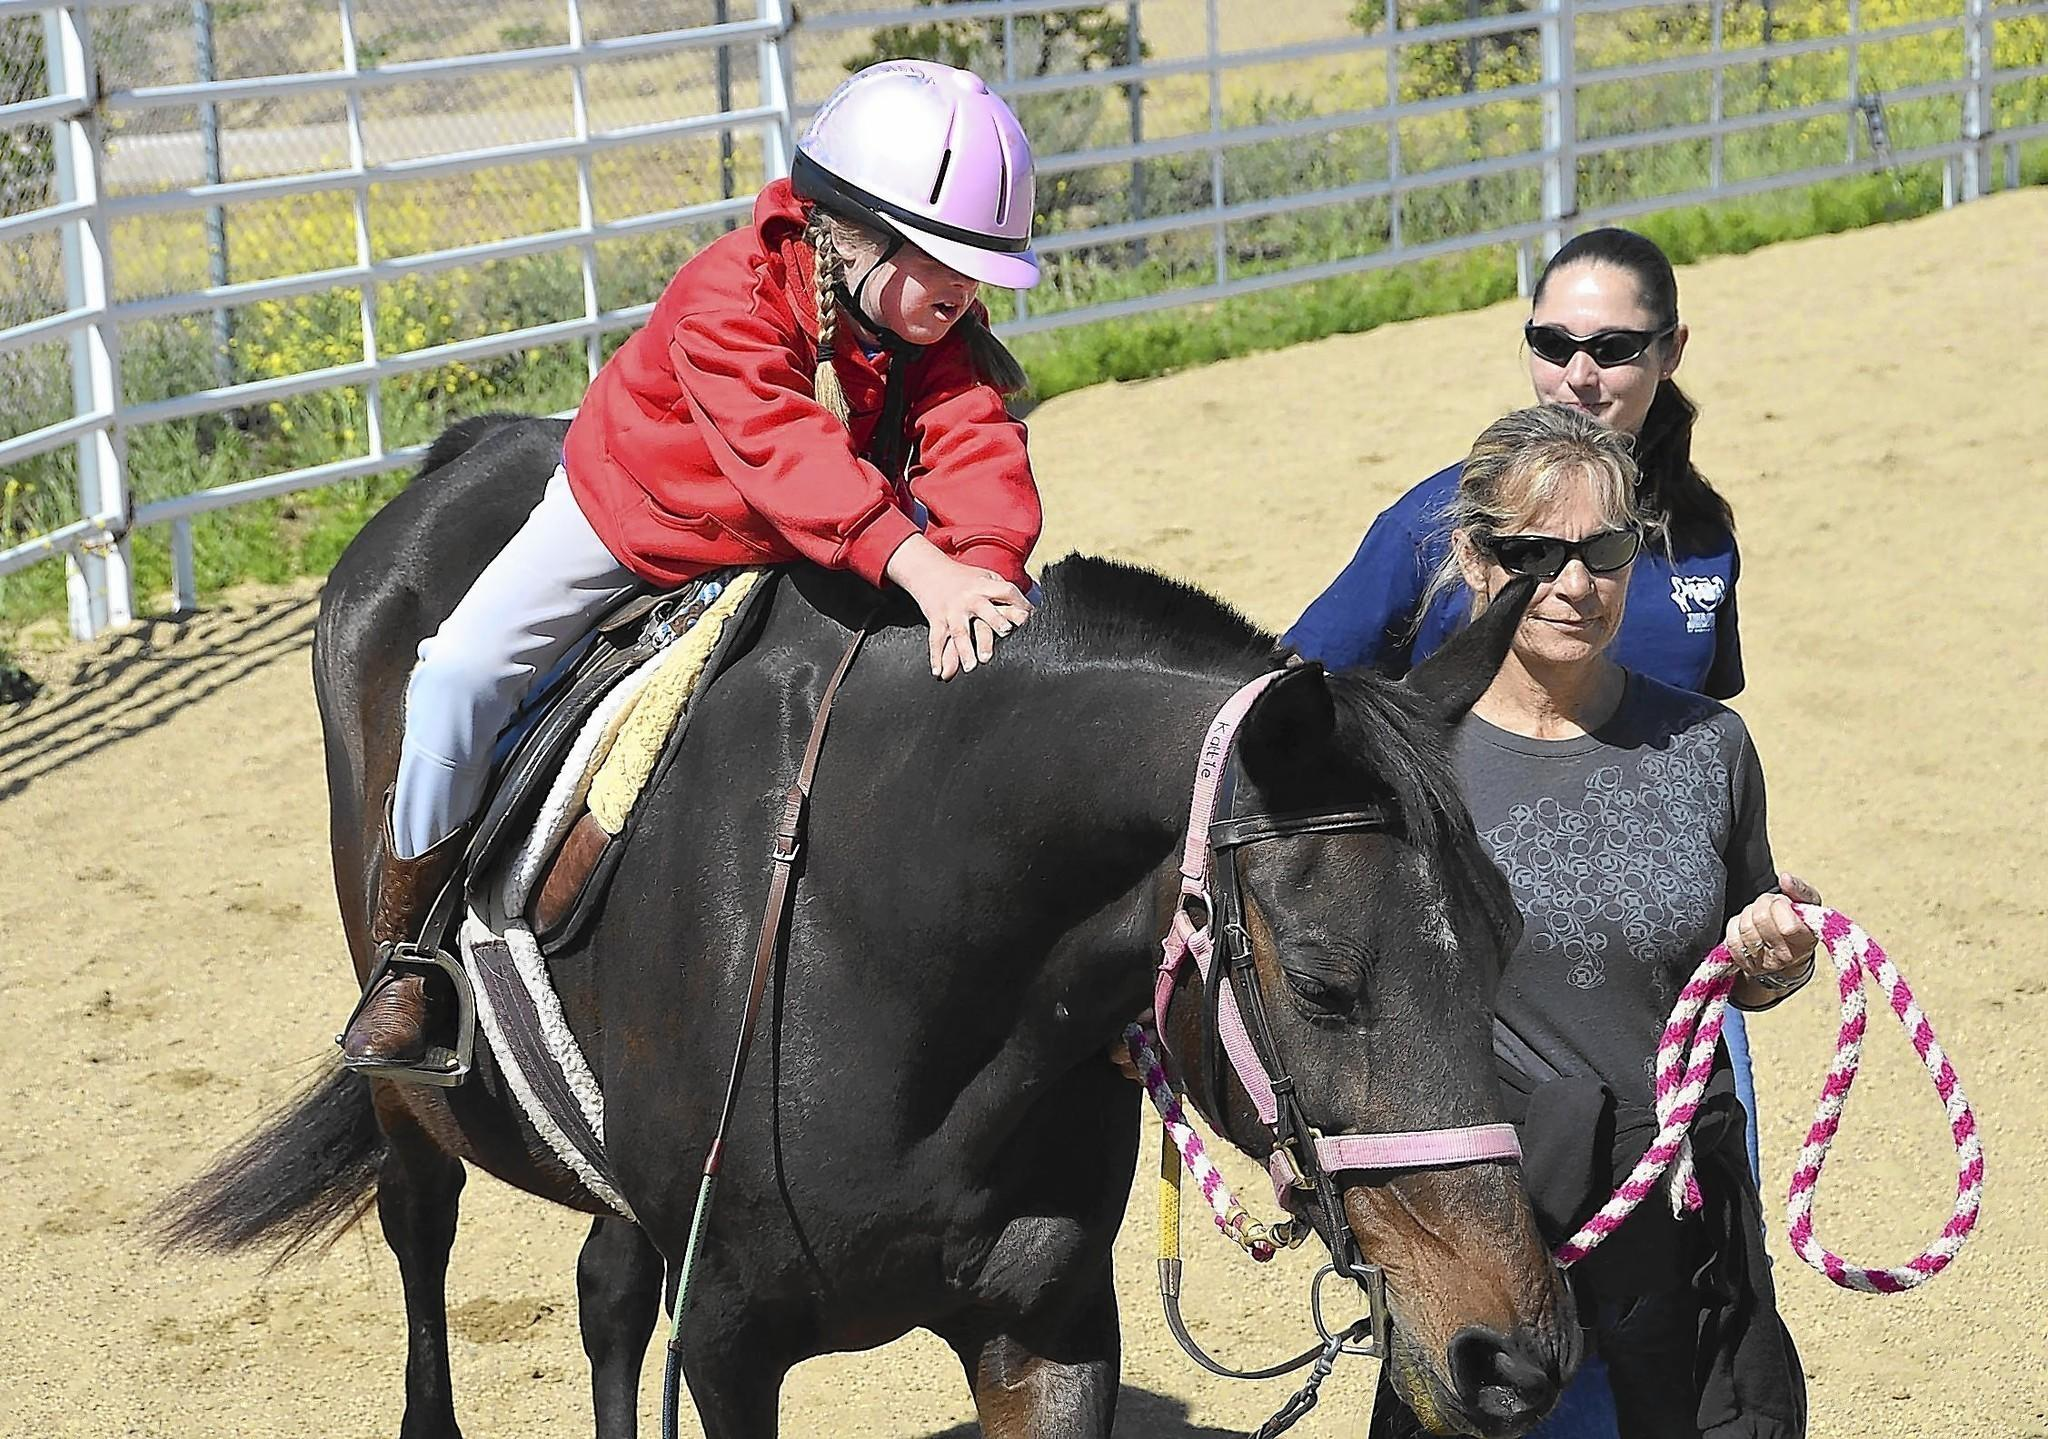 Ten-year-old Julia Kelly holds onto Kattie during her riding class at the Huntington Beach Therapeutic Riding Center on Saturday in preparation for the center's annual Derby Day fundraiser.